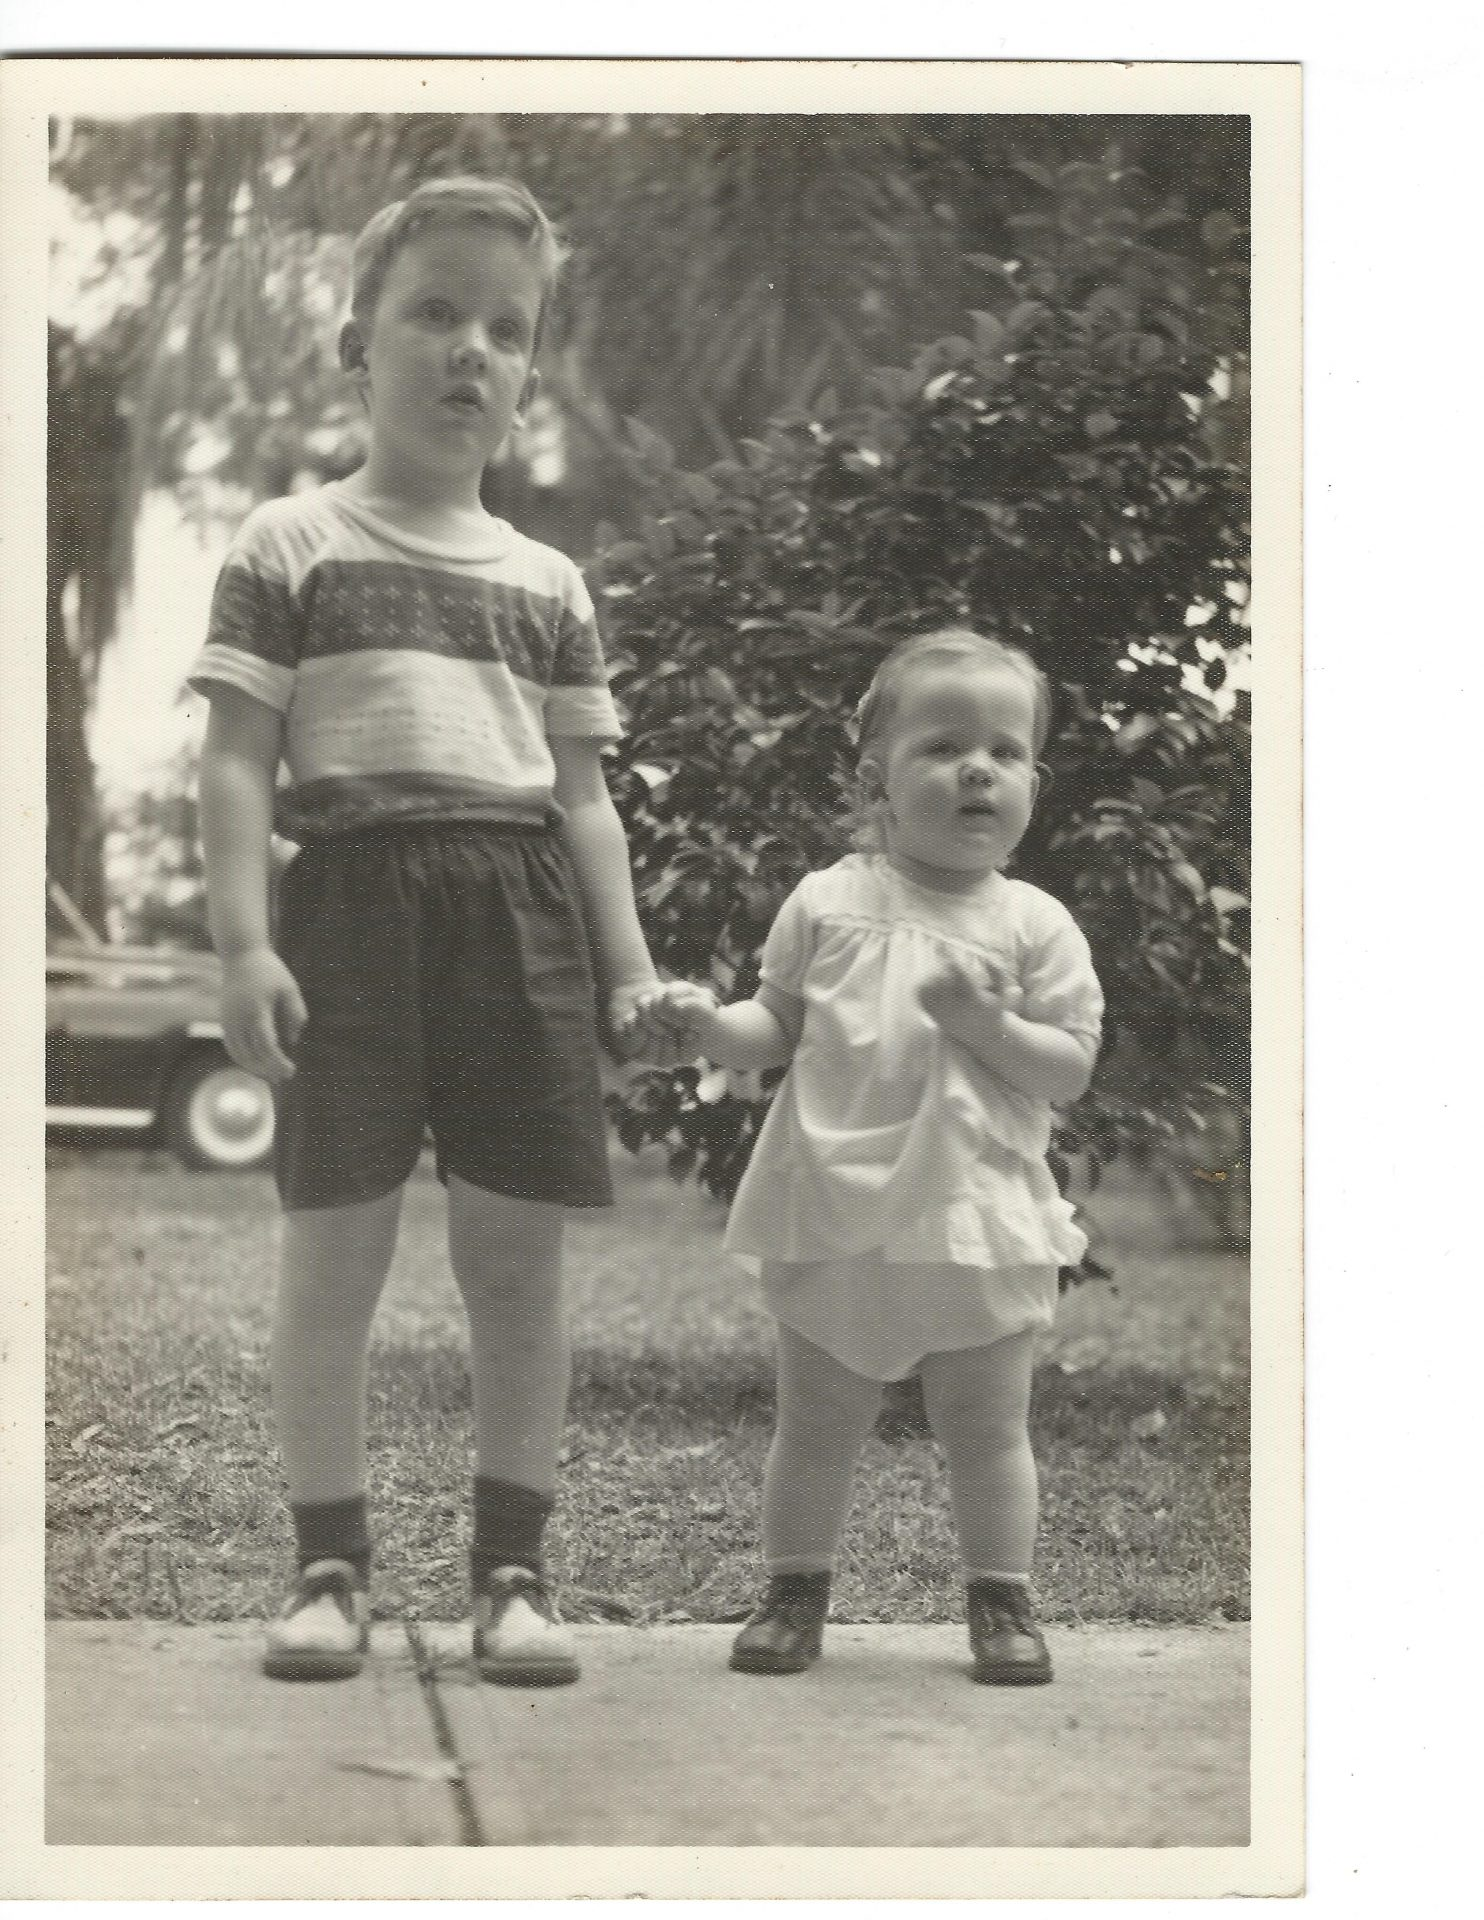 Victor and Valorie in grandmothers front yard in 1956 or so. Mother liked this picture.